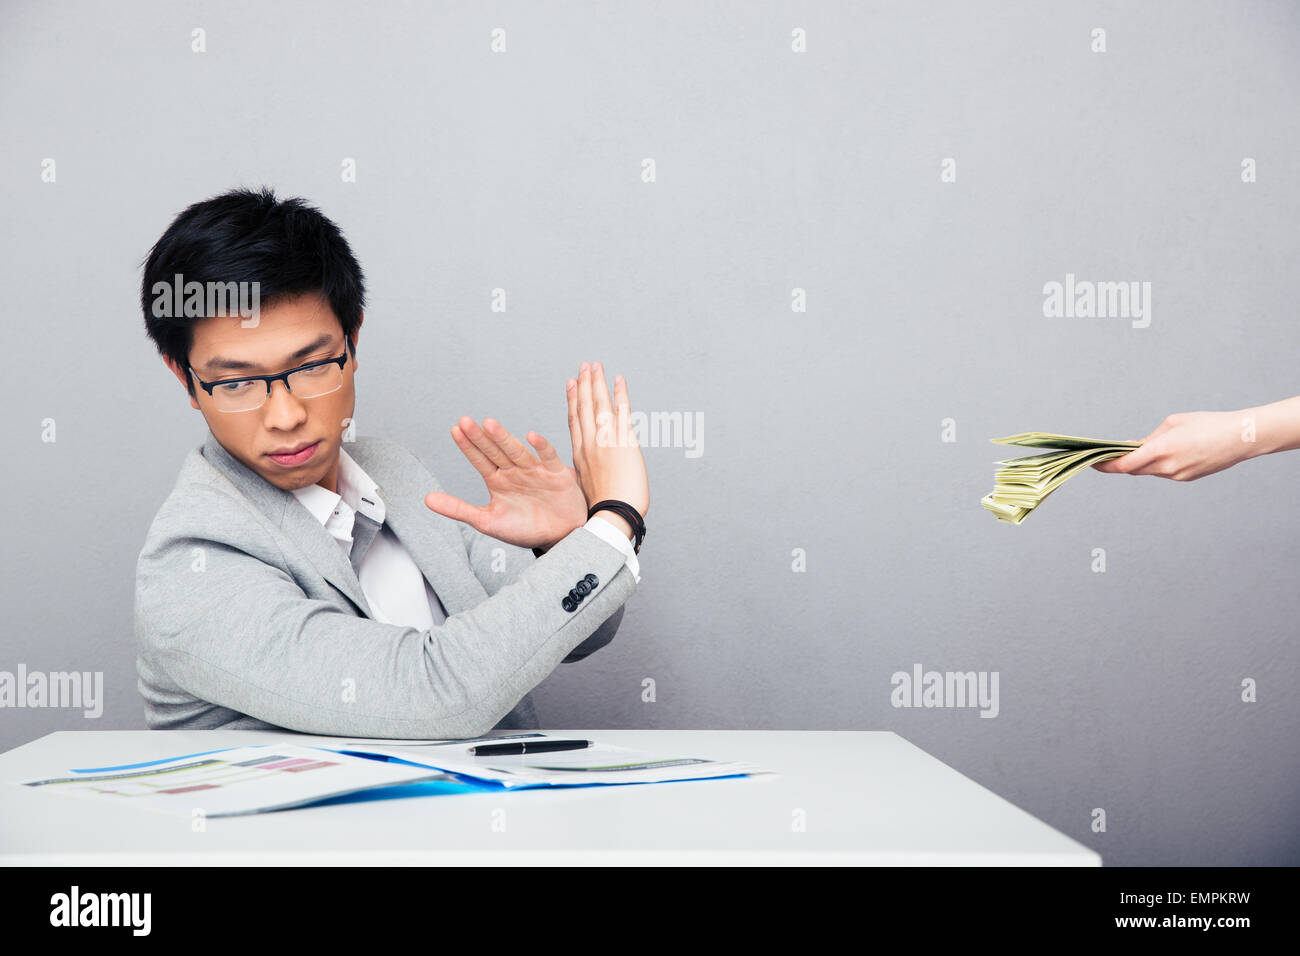 Asian young businessman gesturing stop sign while someone proposing money to him over gray background - Stock Image